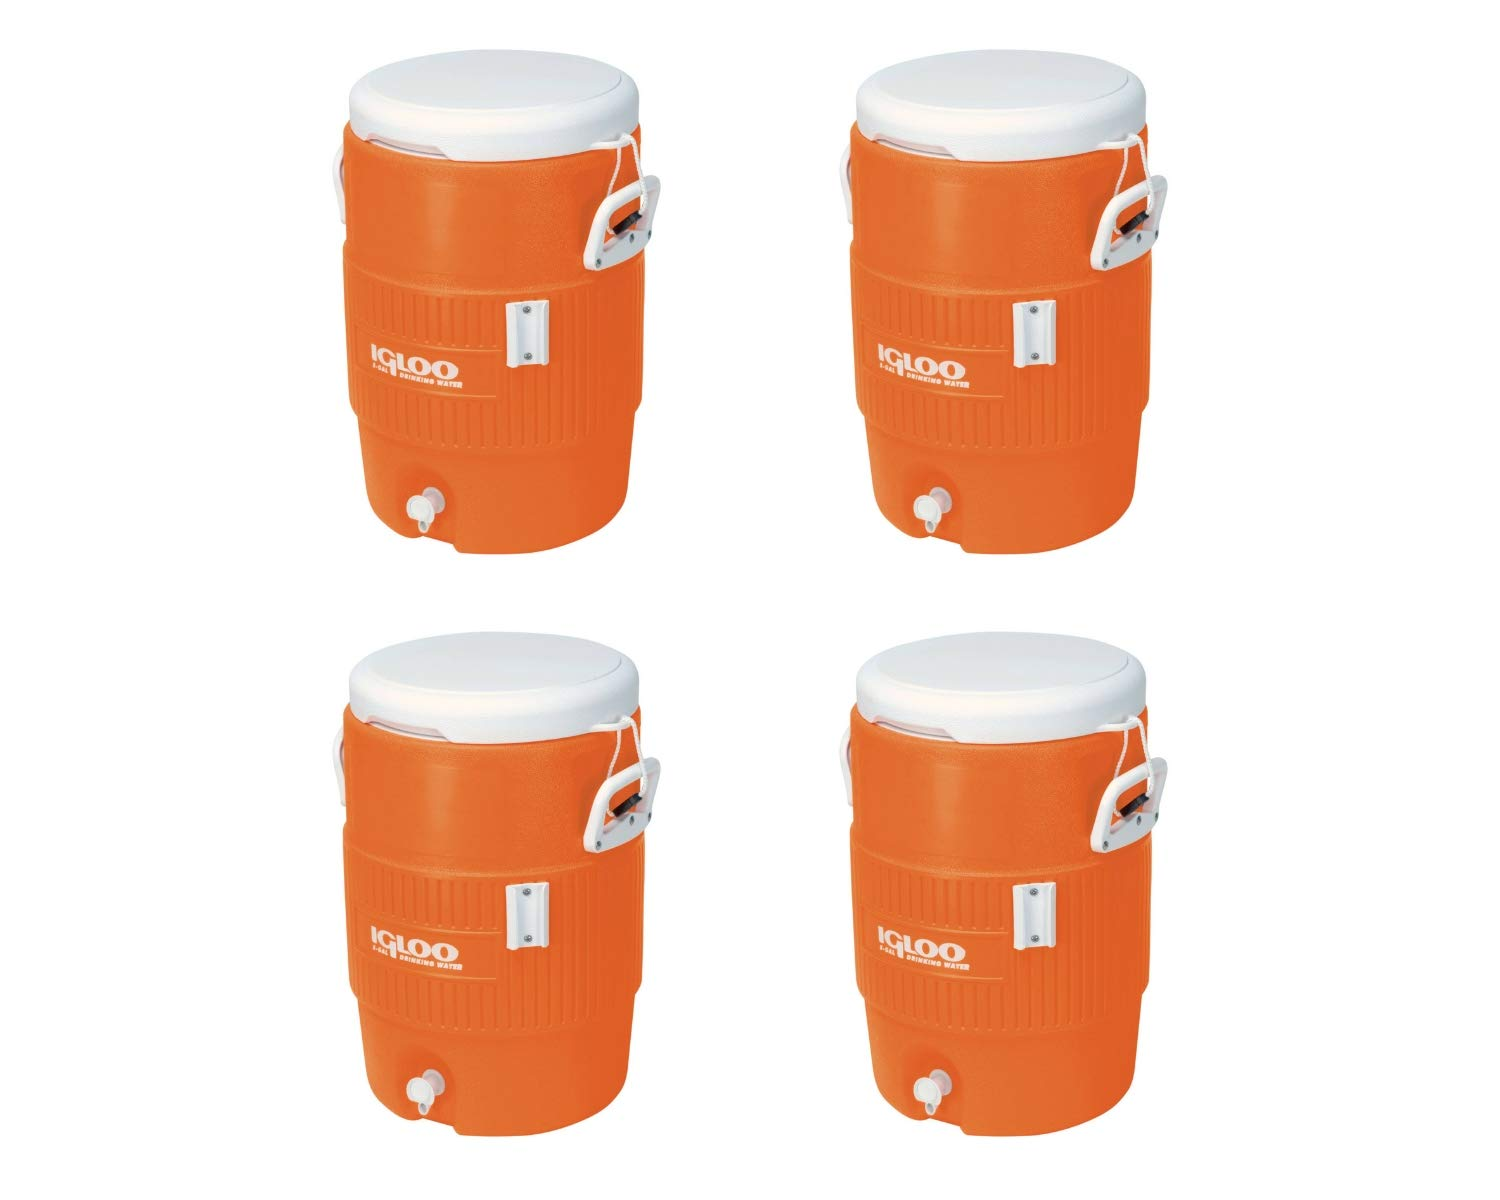 Igloo 5-Gallon Heavy-Duty Beverage Cooler, Orange & Ultimate Drip Catcher Set (4 Set, 5-Gallon, 14.5'' x 13'' x 19.5'', Orange)